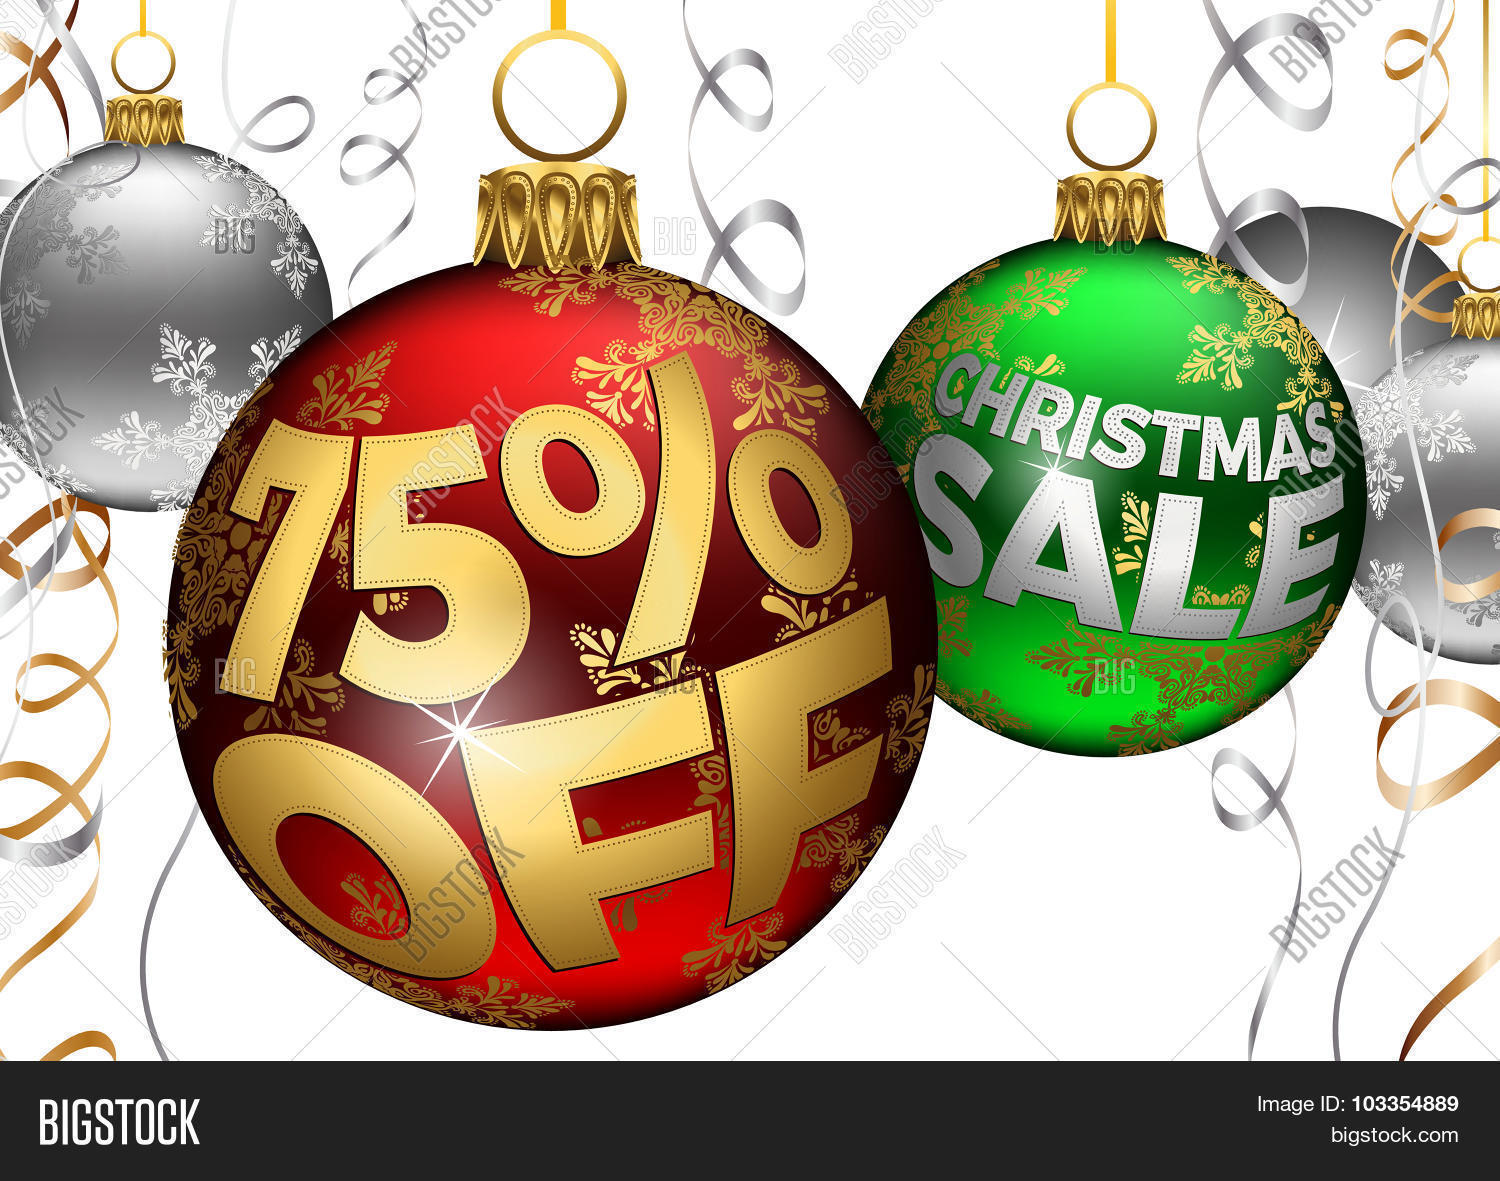 75 off baubles and ribbons christmas sale balls